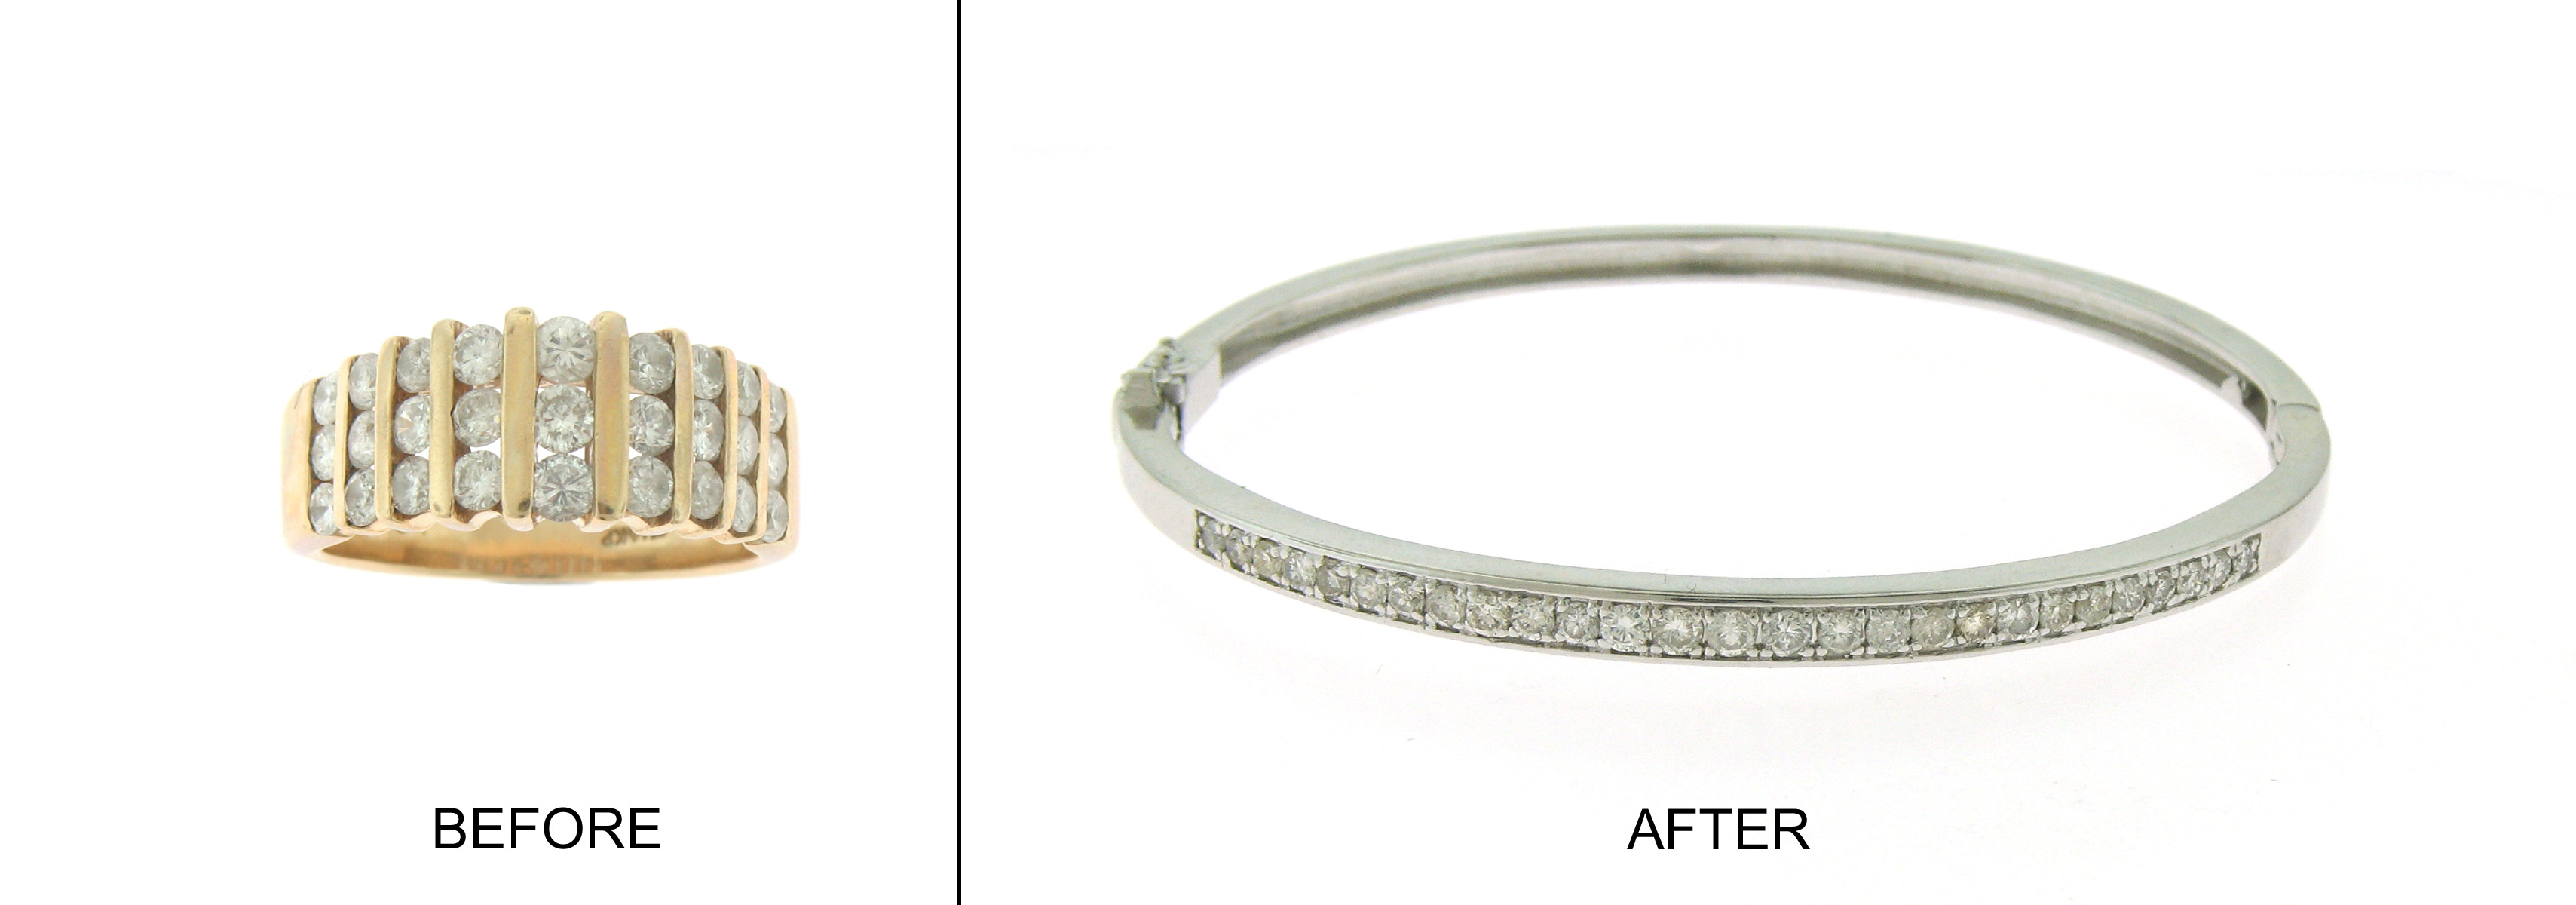 before_after_bracelet